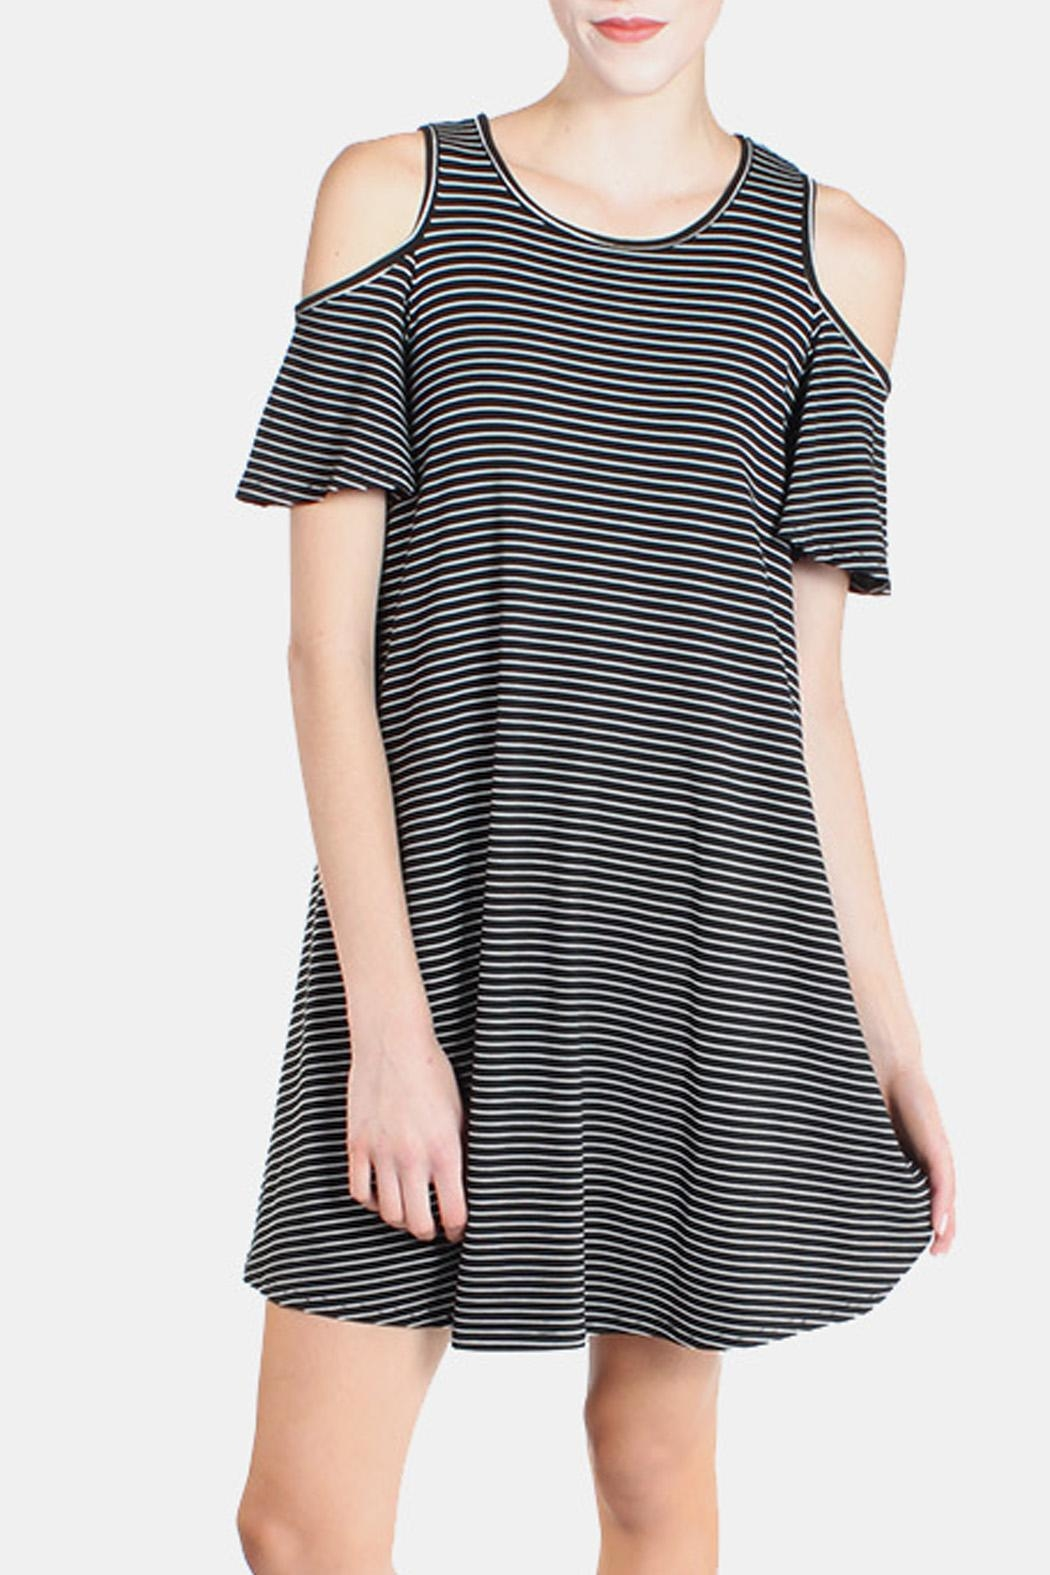 Chris & Carol Cold Shoulder Striped Dress - Main Image